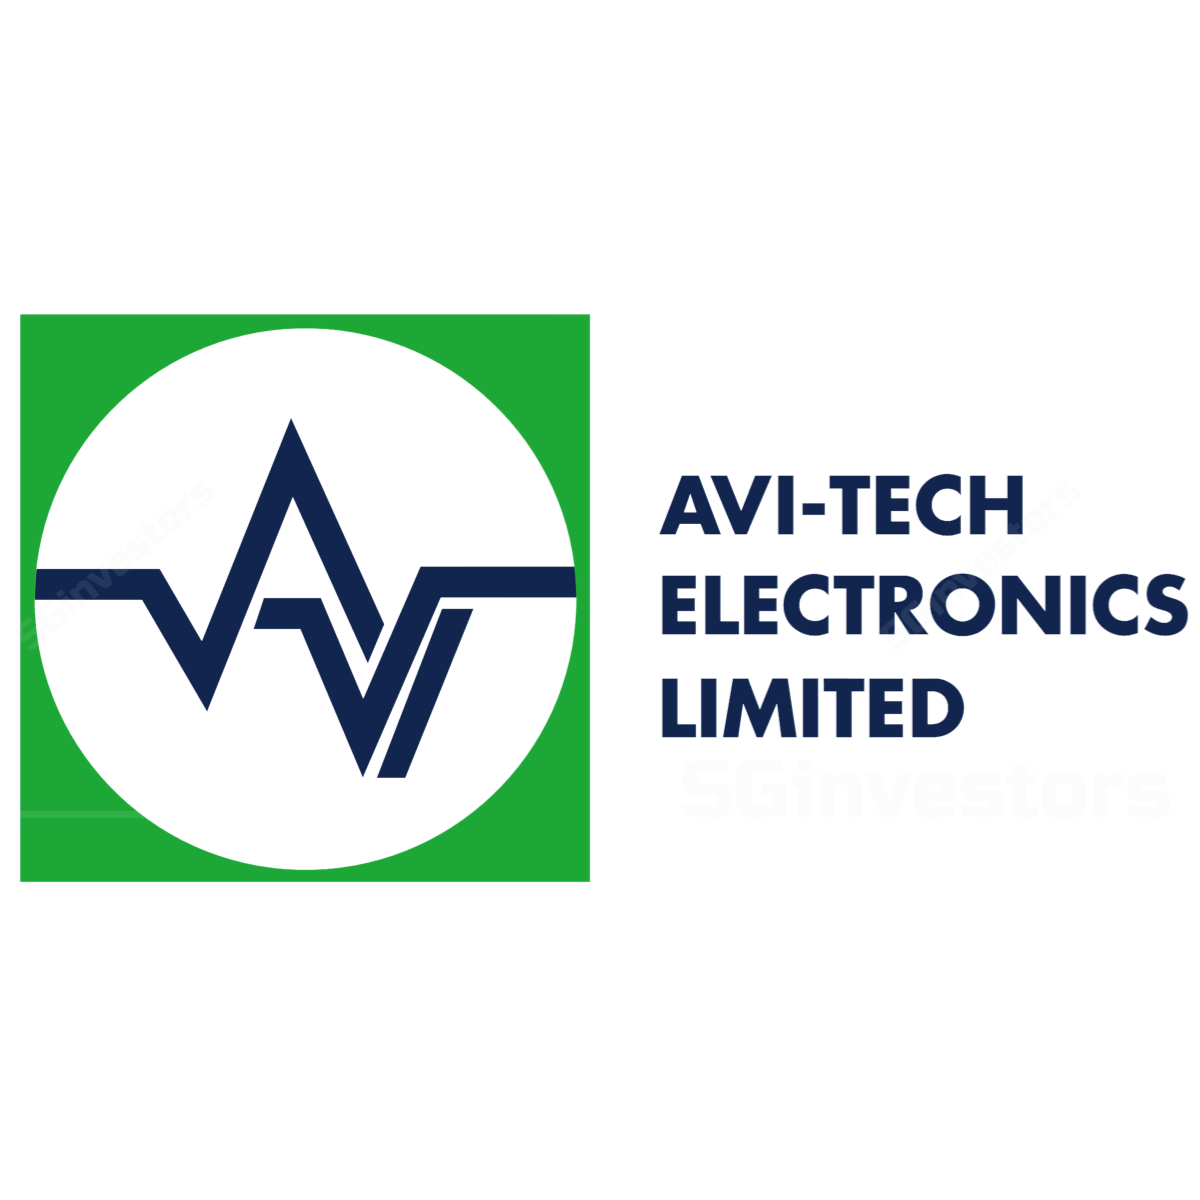 Avi-Tech Electronics - RHB Invest 2017-05-29: Riding On The Automotive Boom